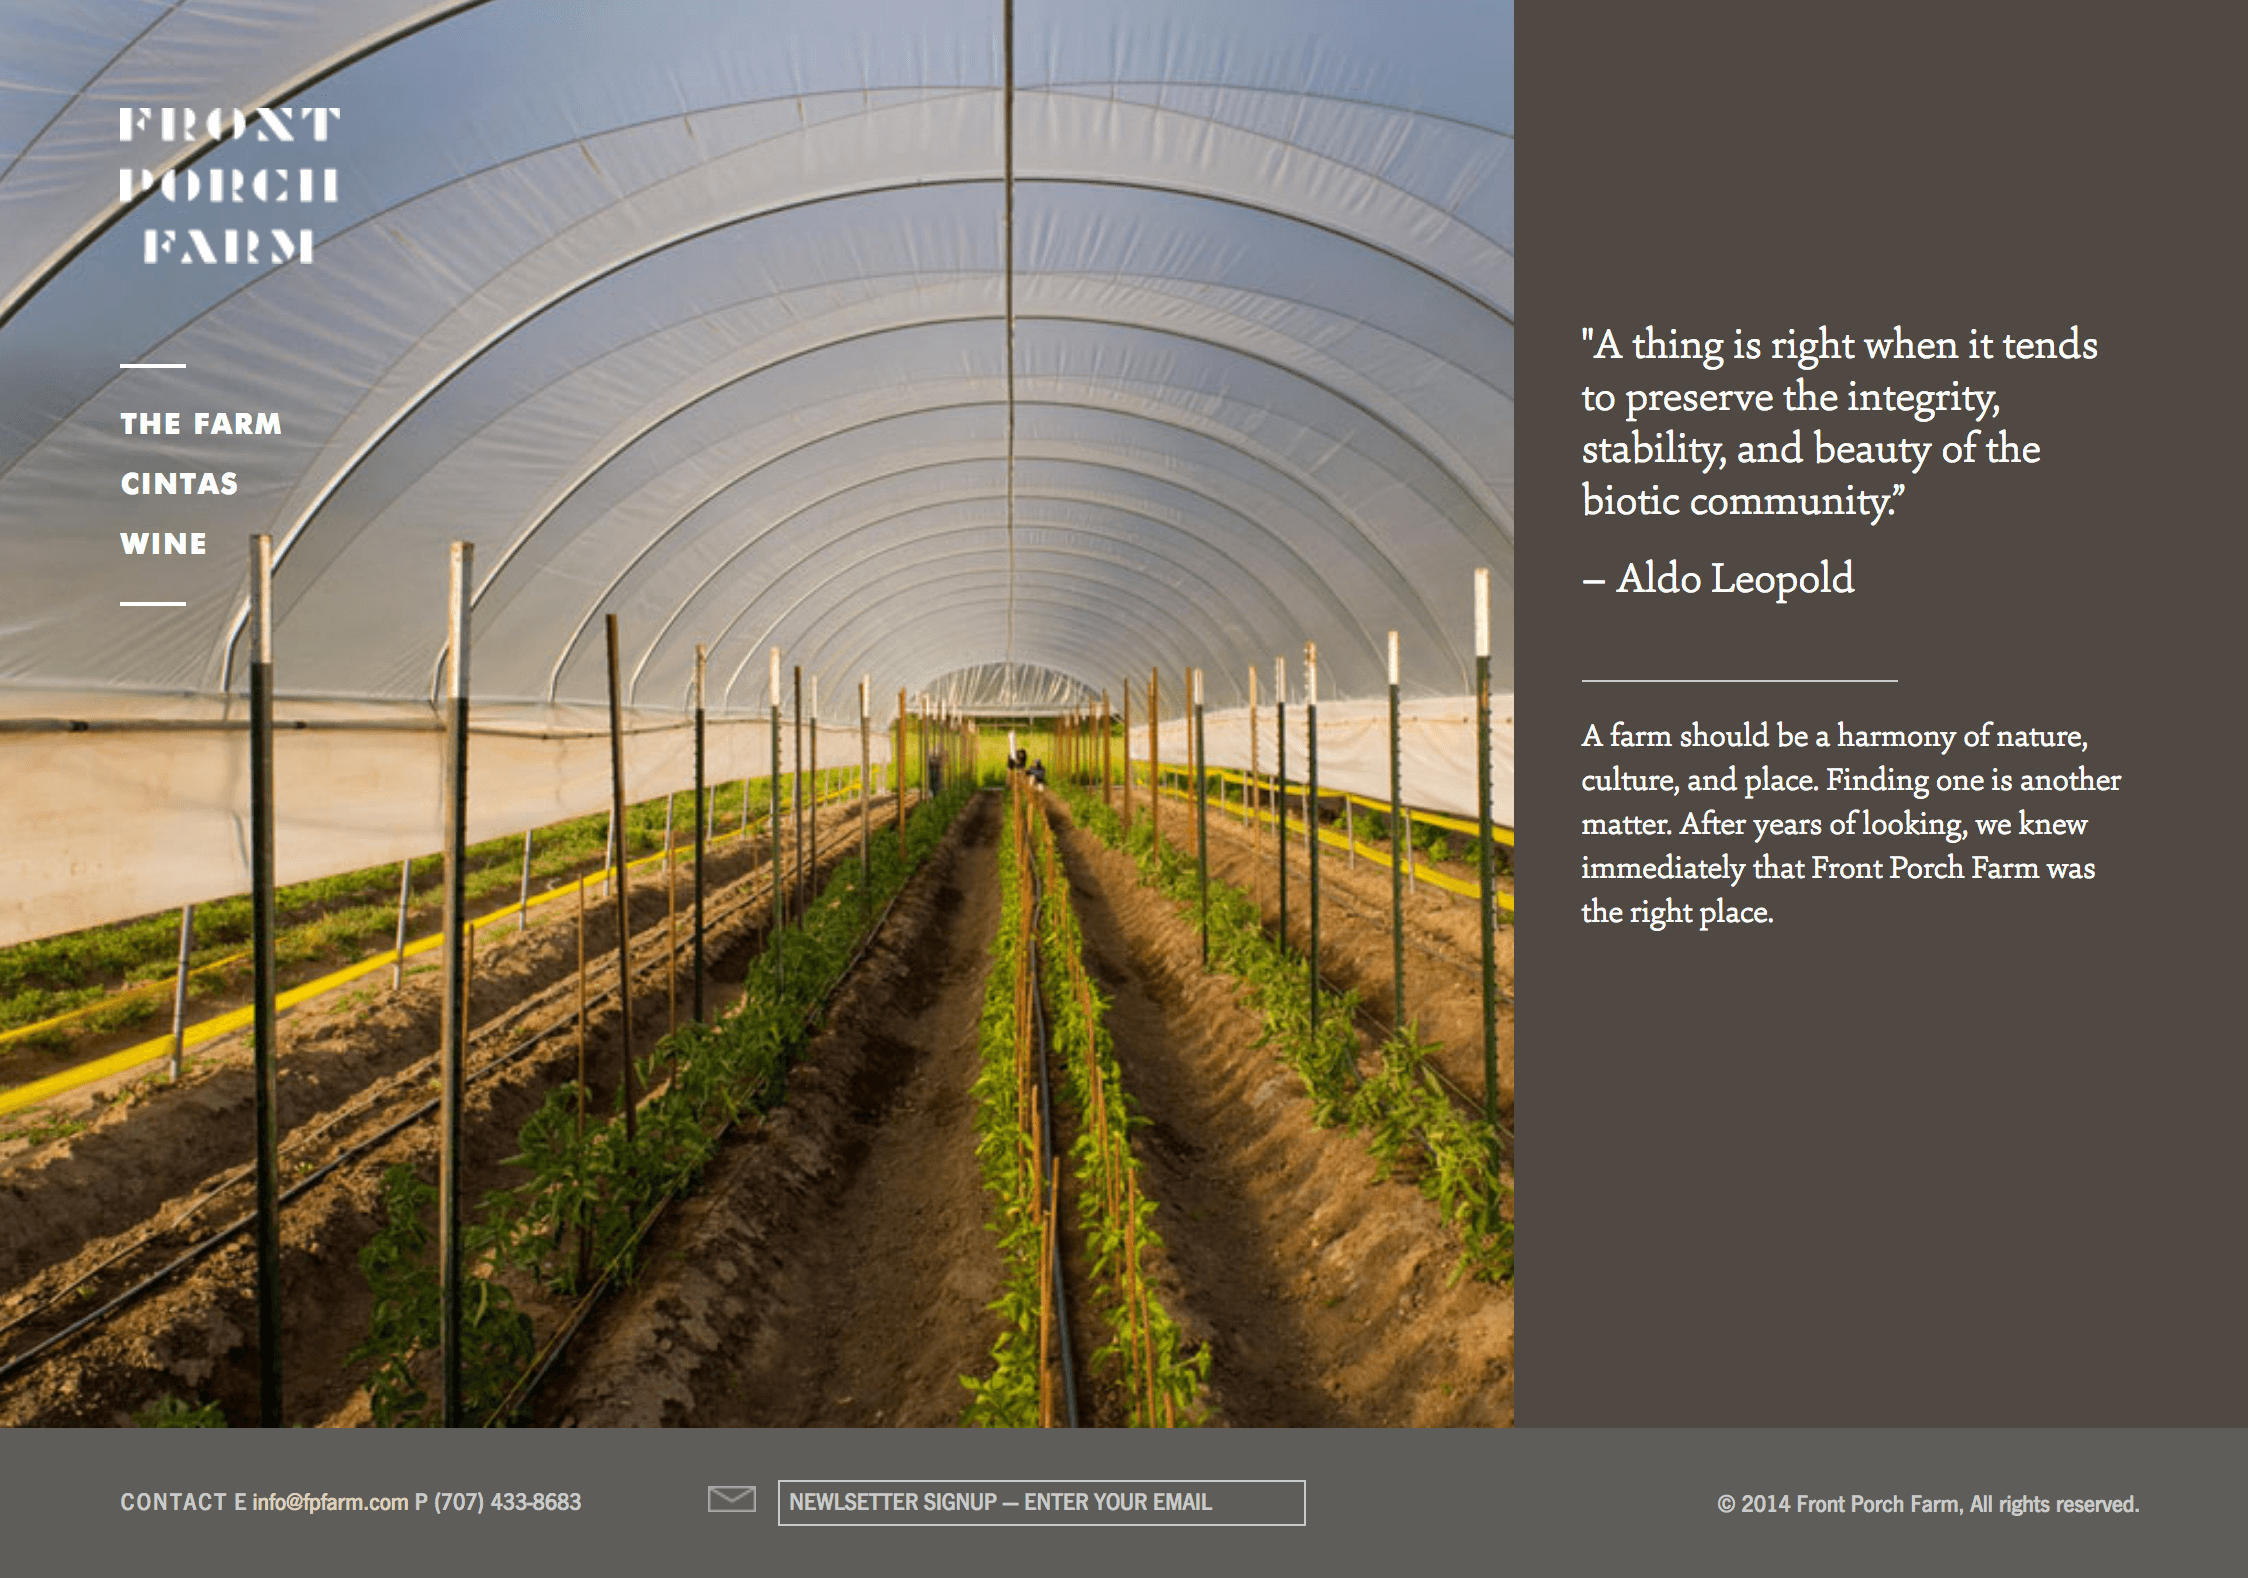 Front Porch Farm webpage featuring greenhouse crops and text